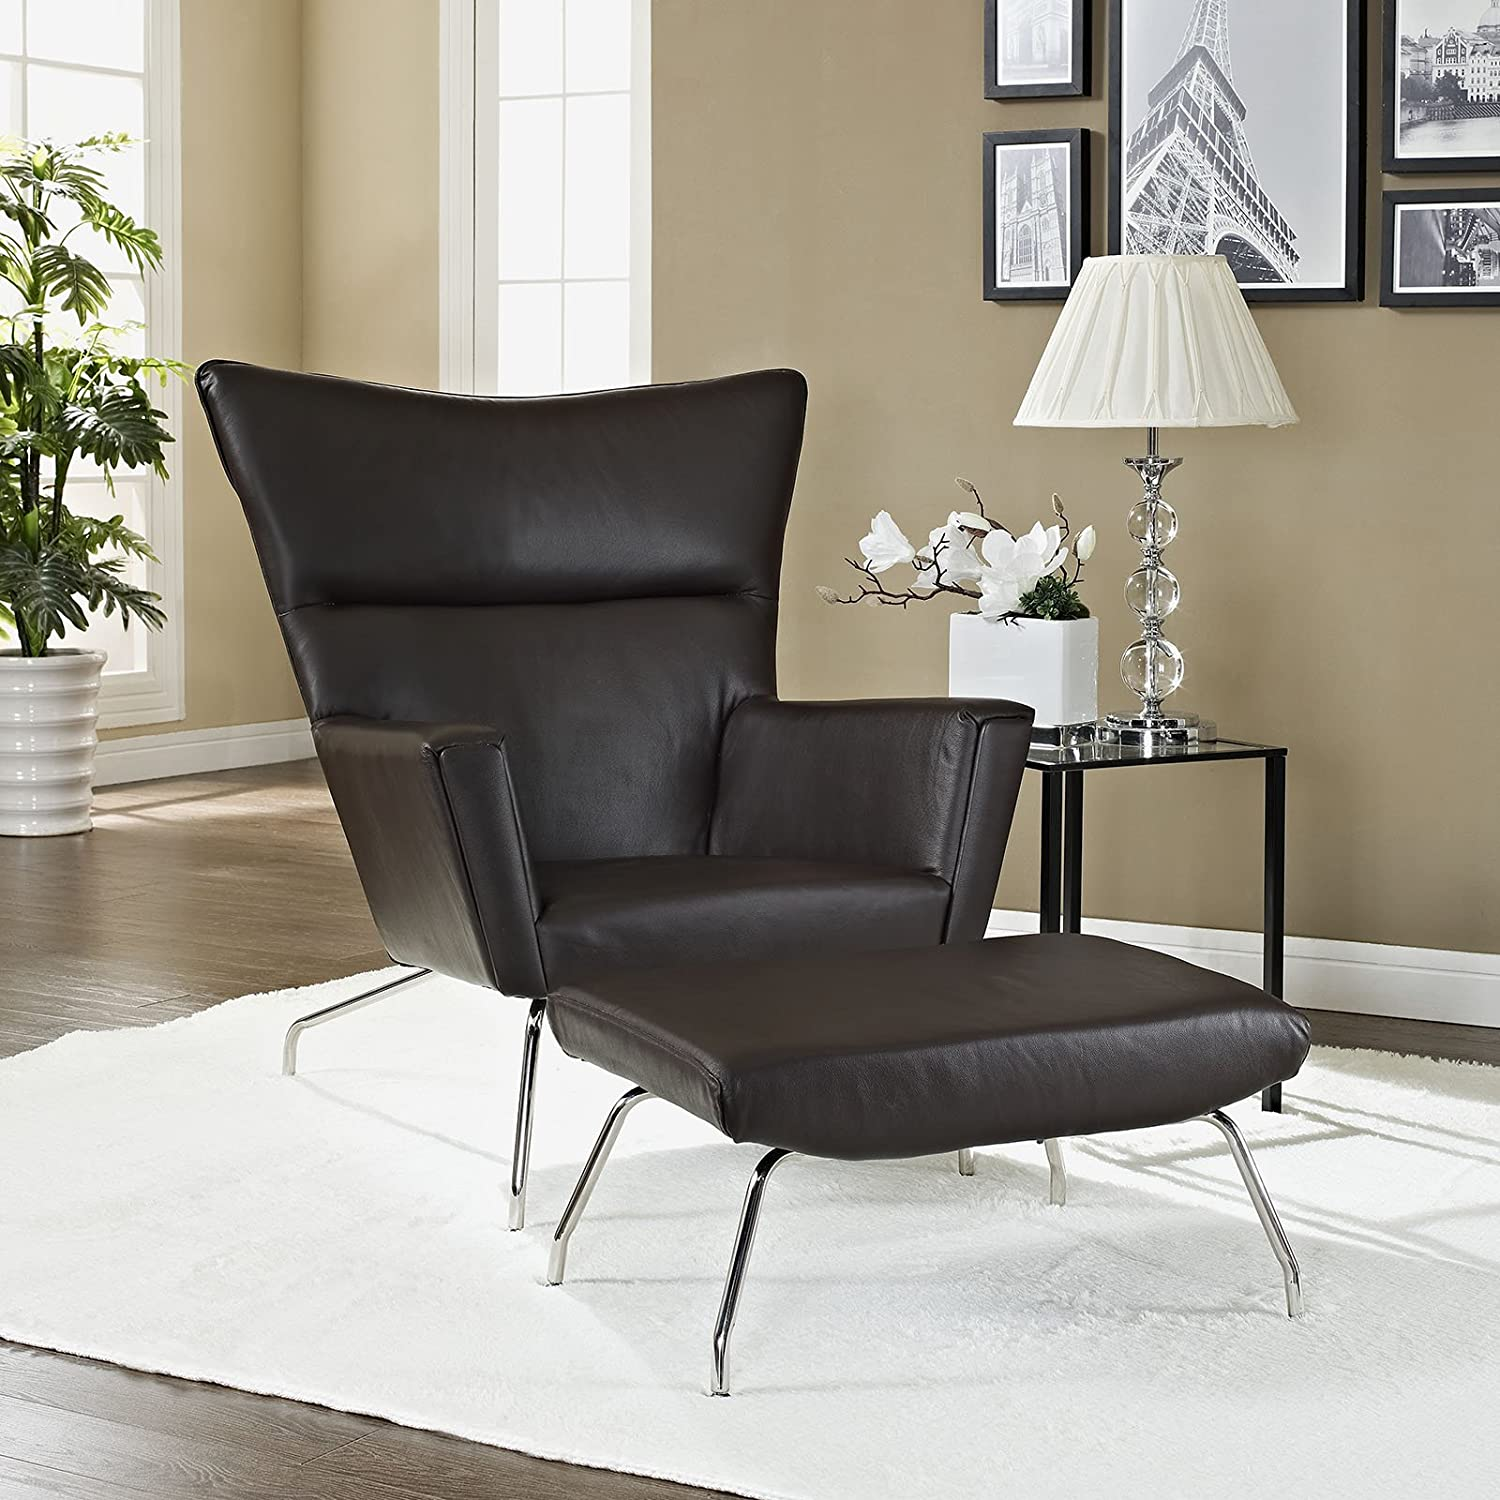 Admirable Amazon Com Modway Class Lounge Chair And Dark Brown Leather Ncnpc Chair Design For Home Ncnpcorg